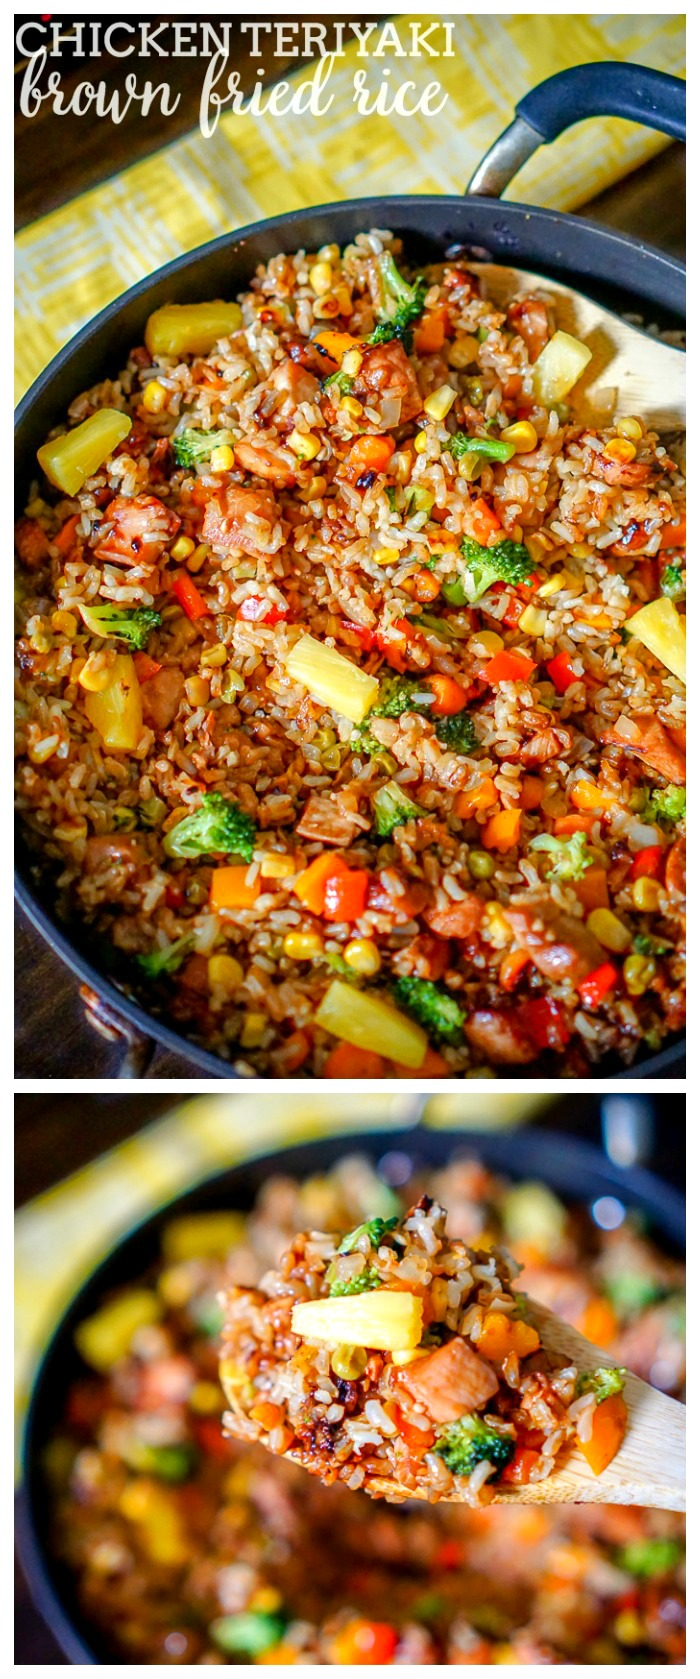 Chicken Teriyaki Brown Fried Rice